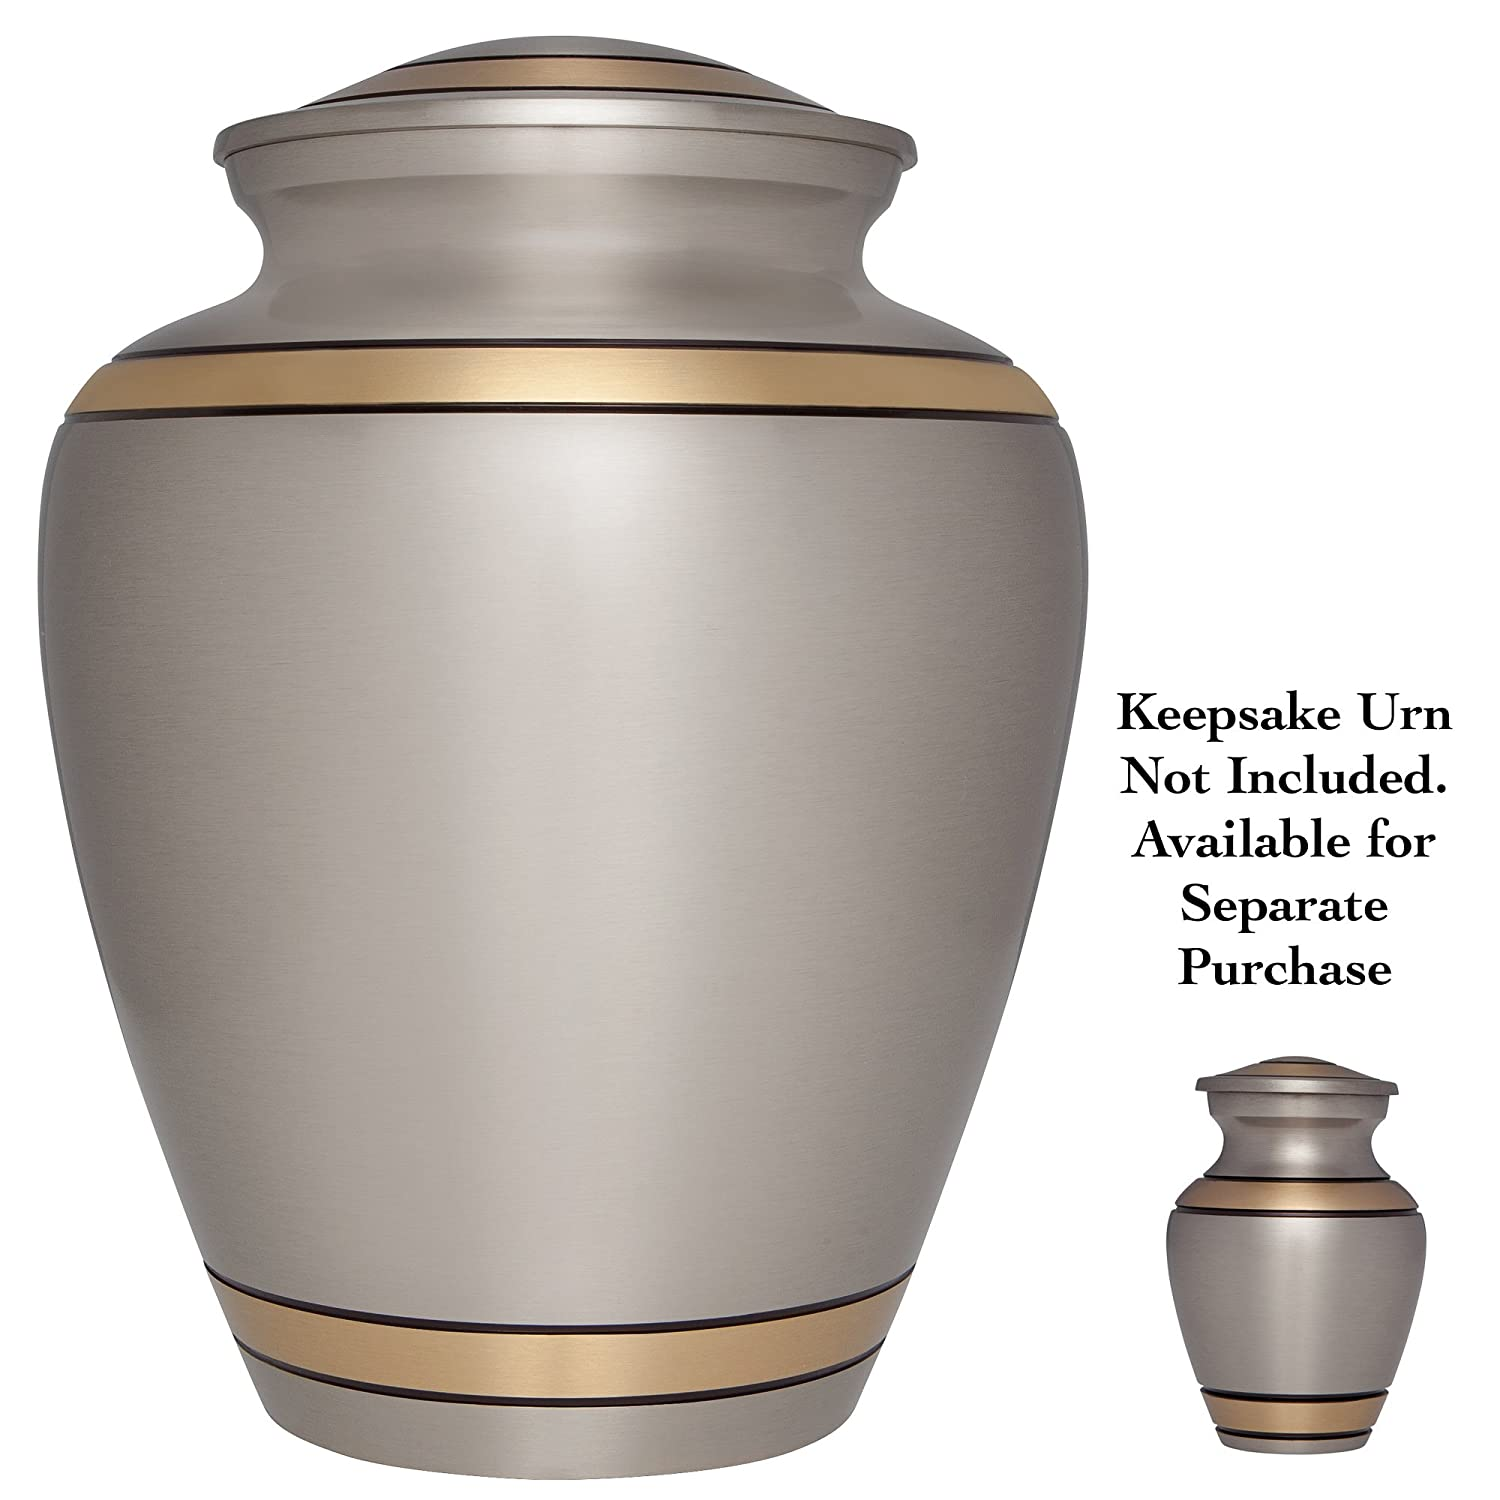 Liliane Memorials Gold Mini Keepsake Urn /• Miniature Funeral Cremation Urn fits Small Amount of Ashes /• Peaceful Embrace Bronze Model /• 3 inches Tall